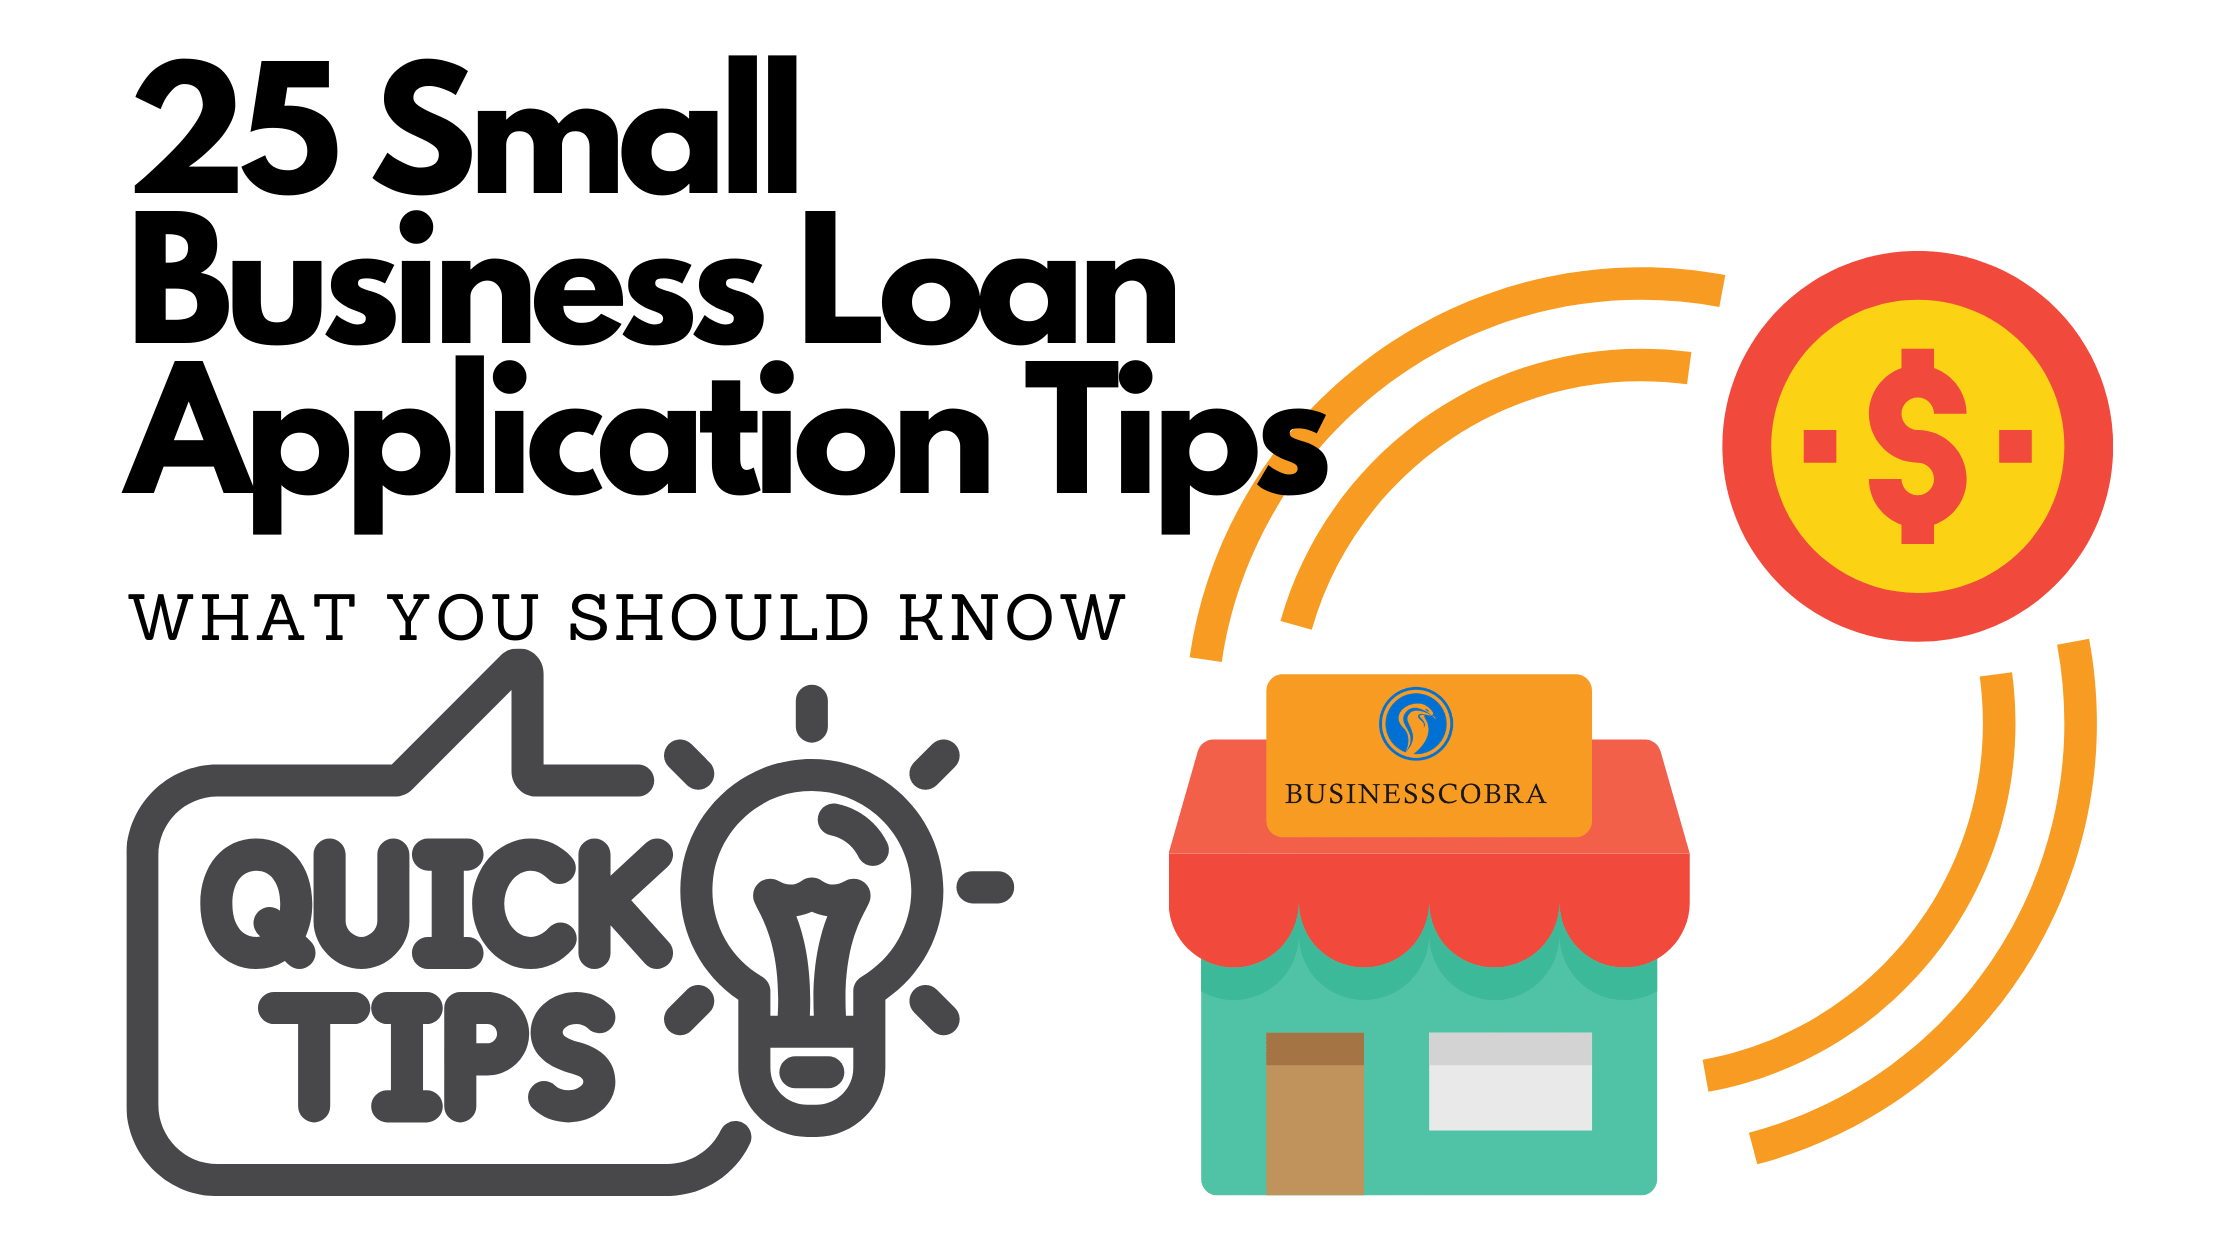 Small Business application Loan Tips